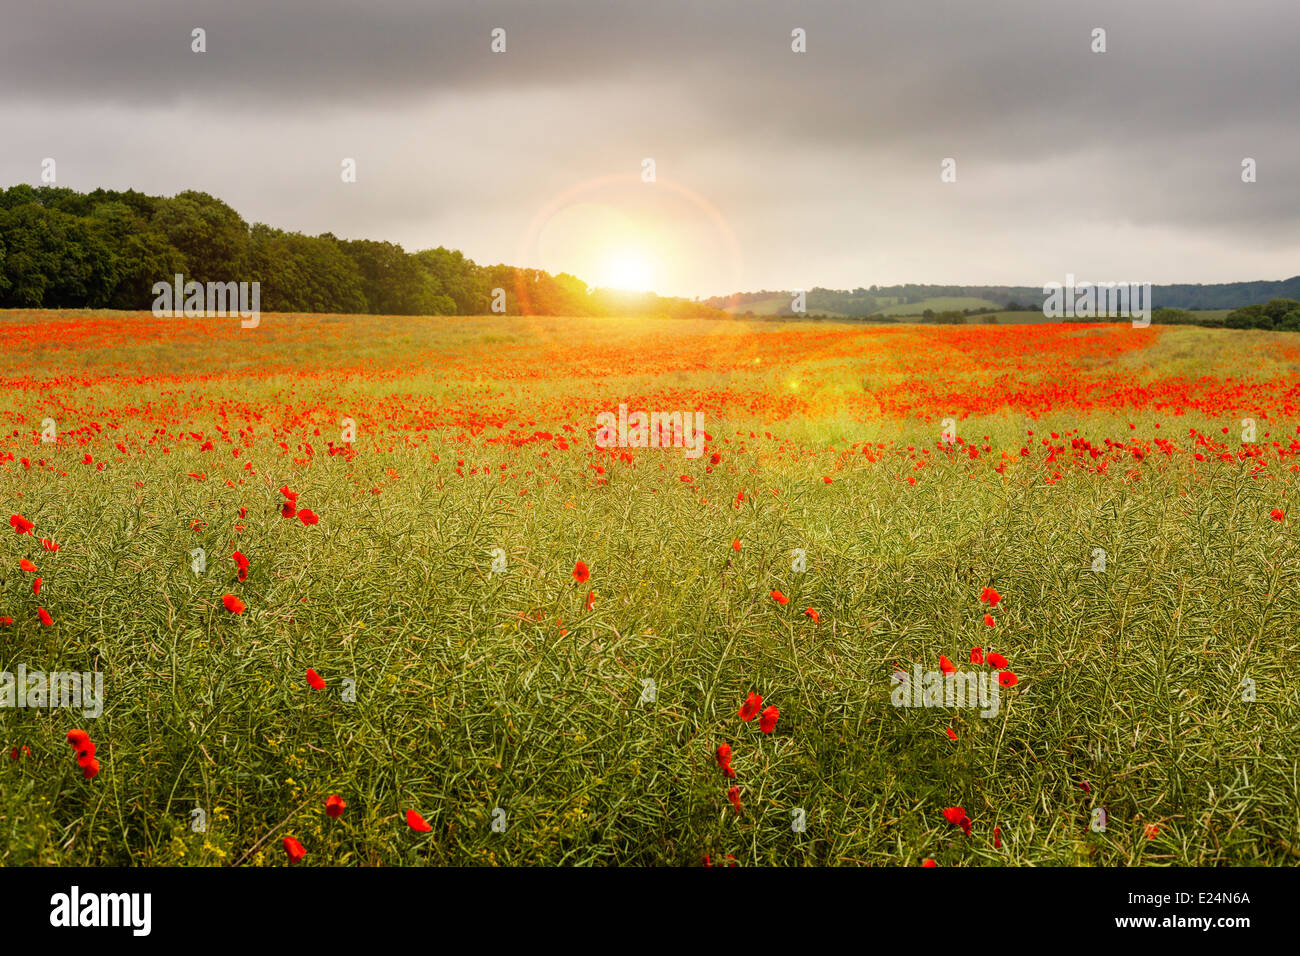 Sunset on a poppy field, Tring, Buckinghamshire - Stock Image